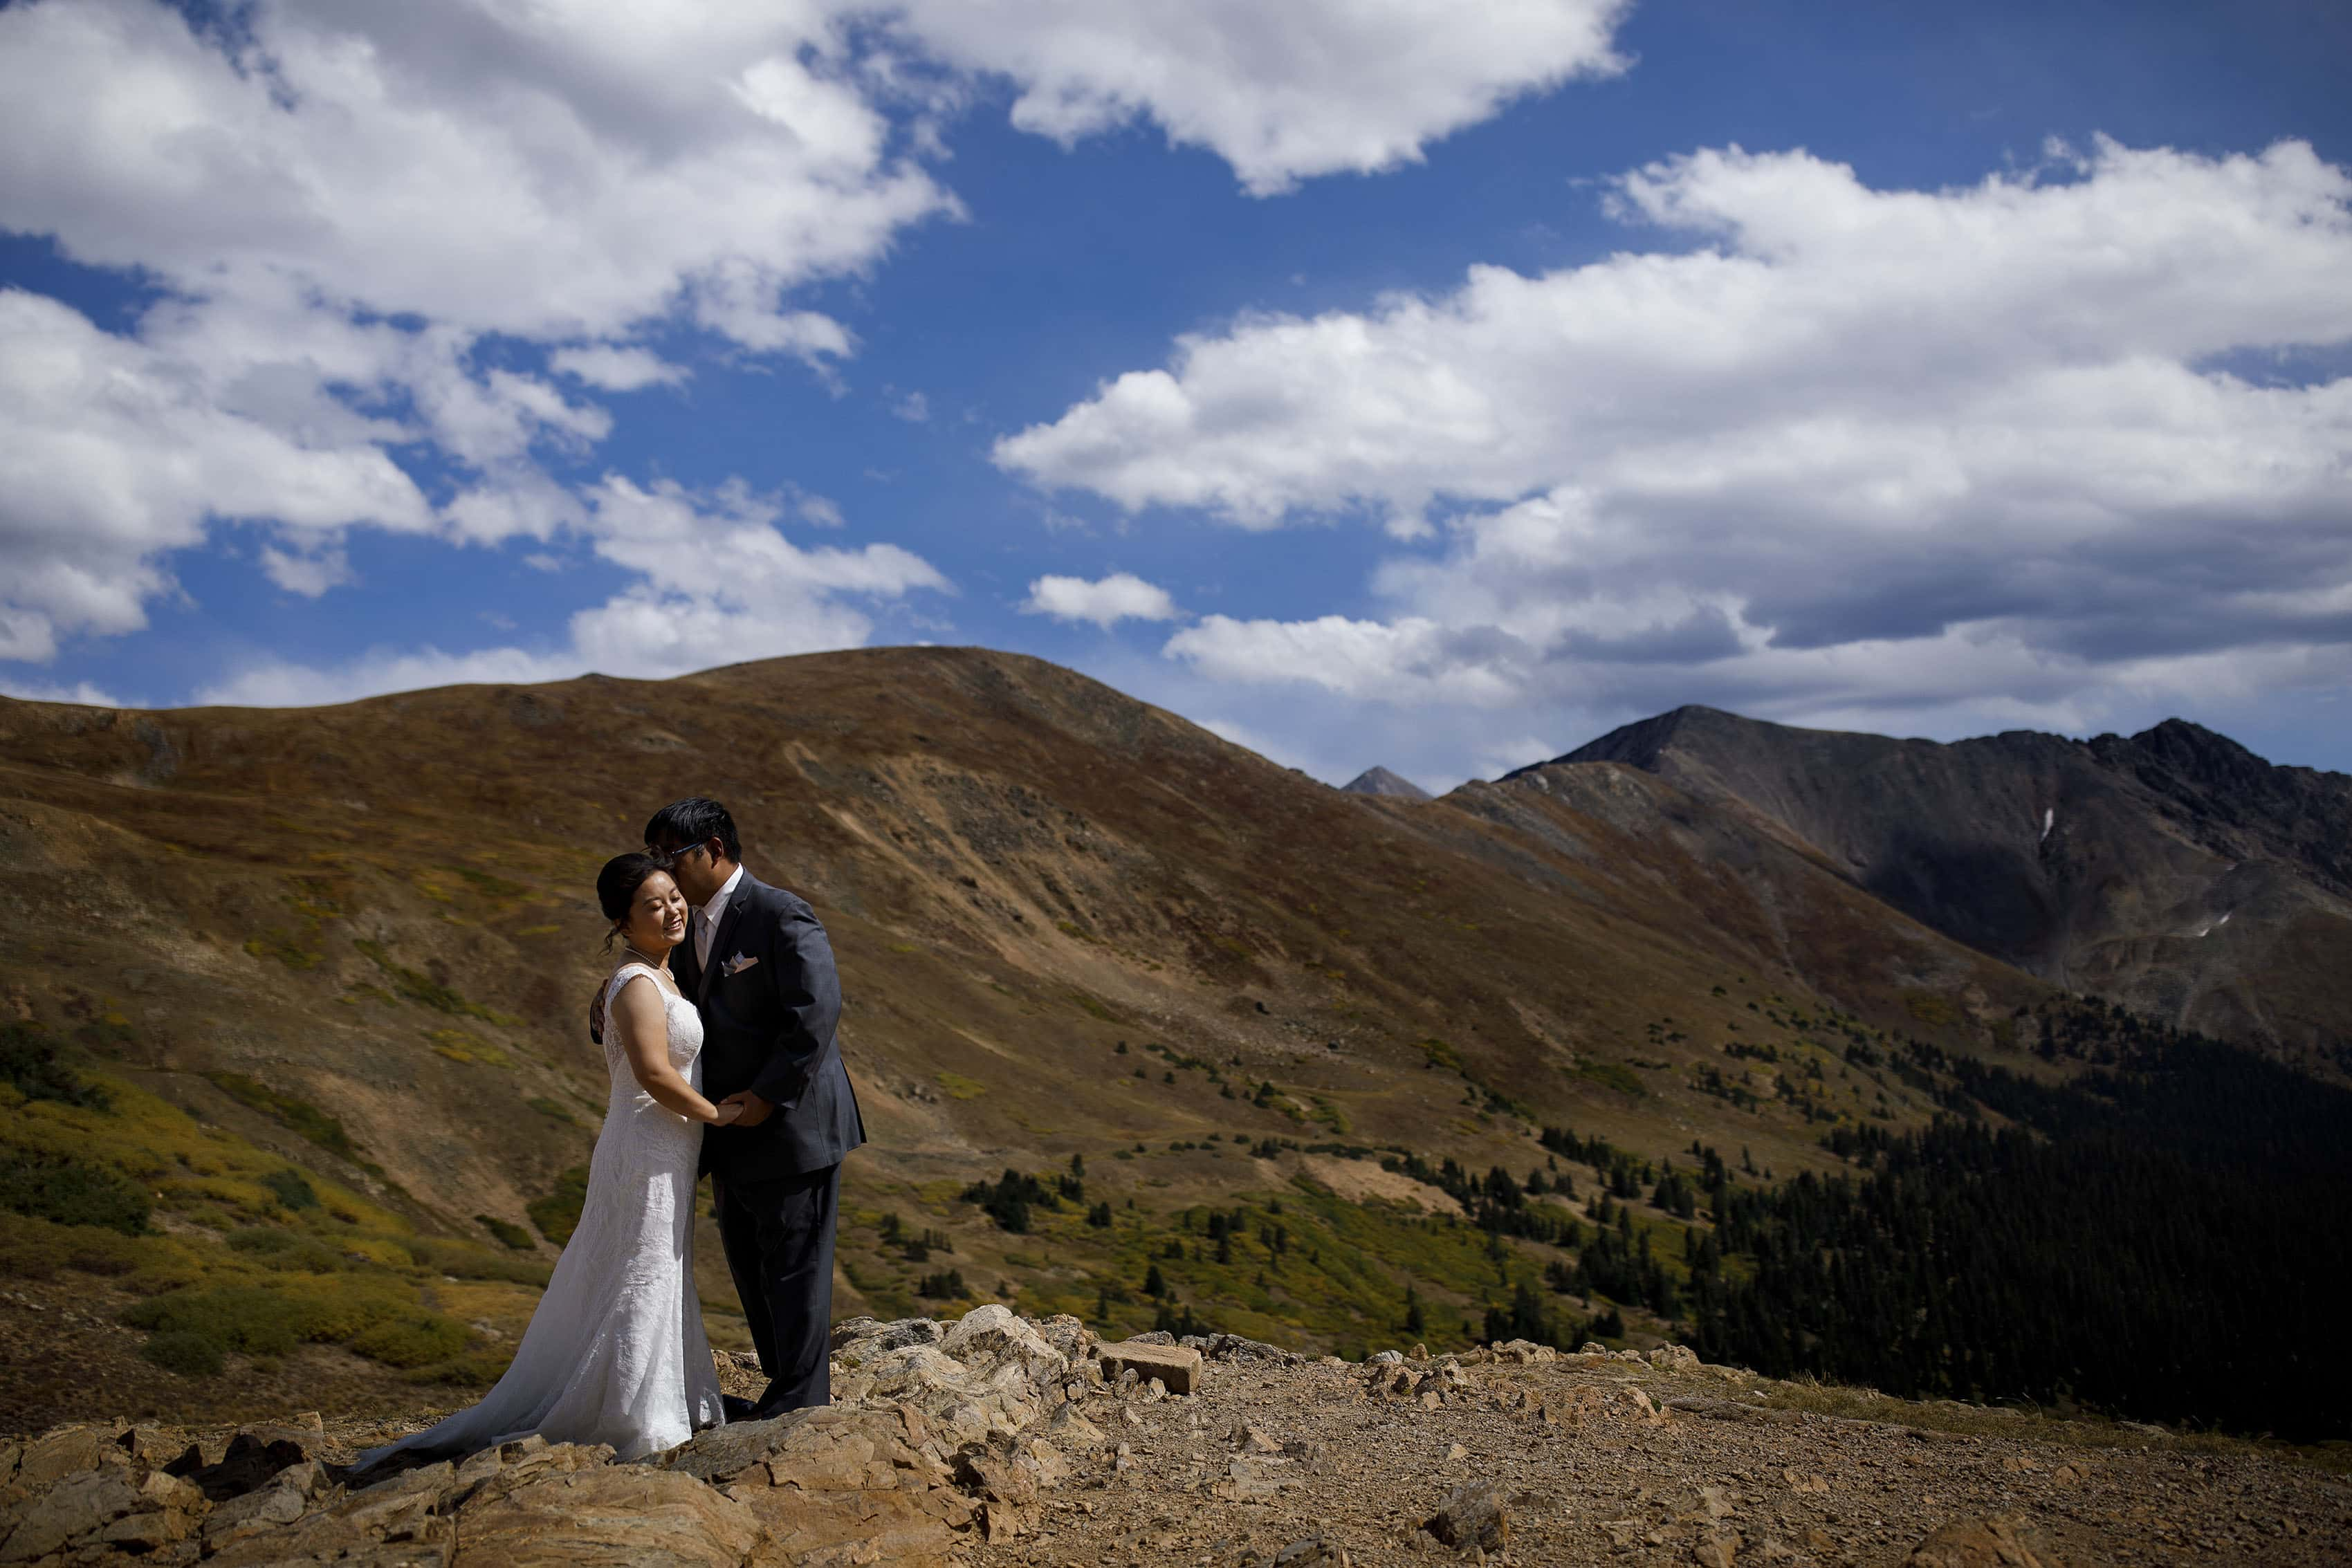 David kisses Xinya atop Loveland Pass on their wedding day